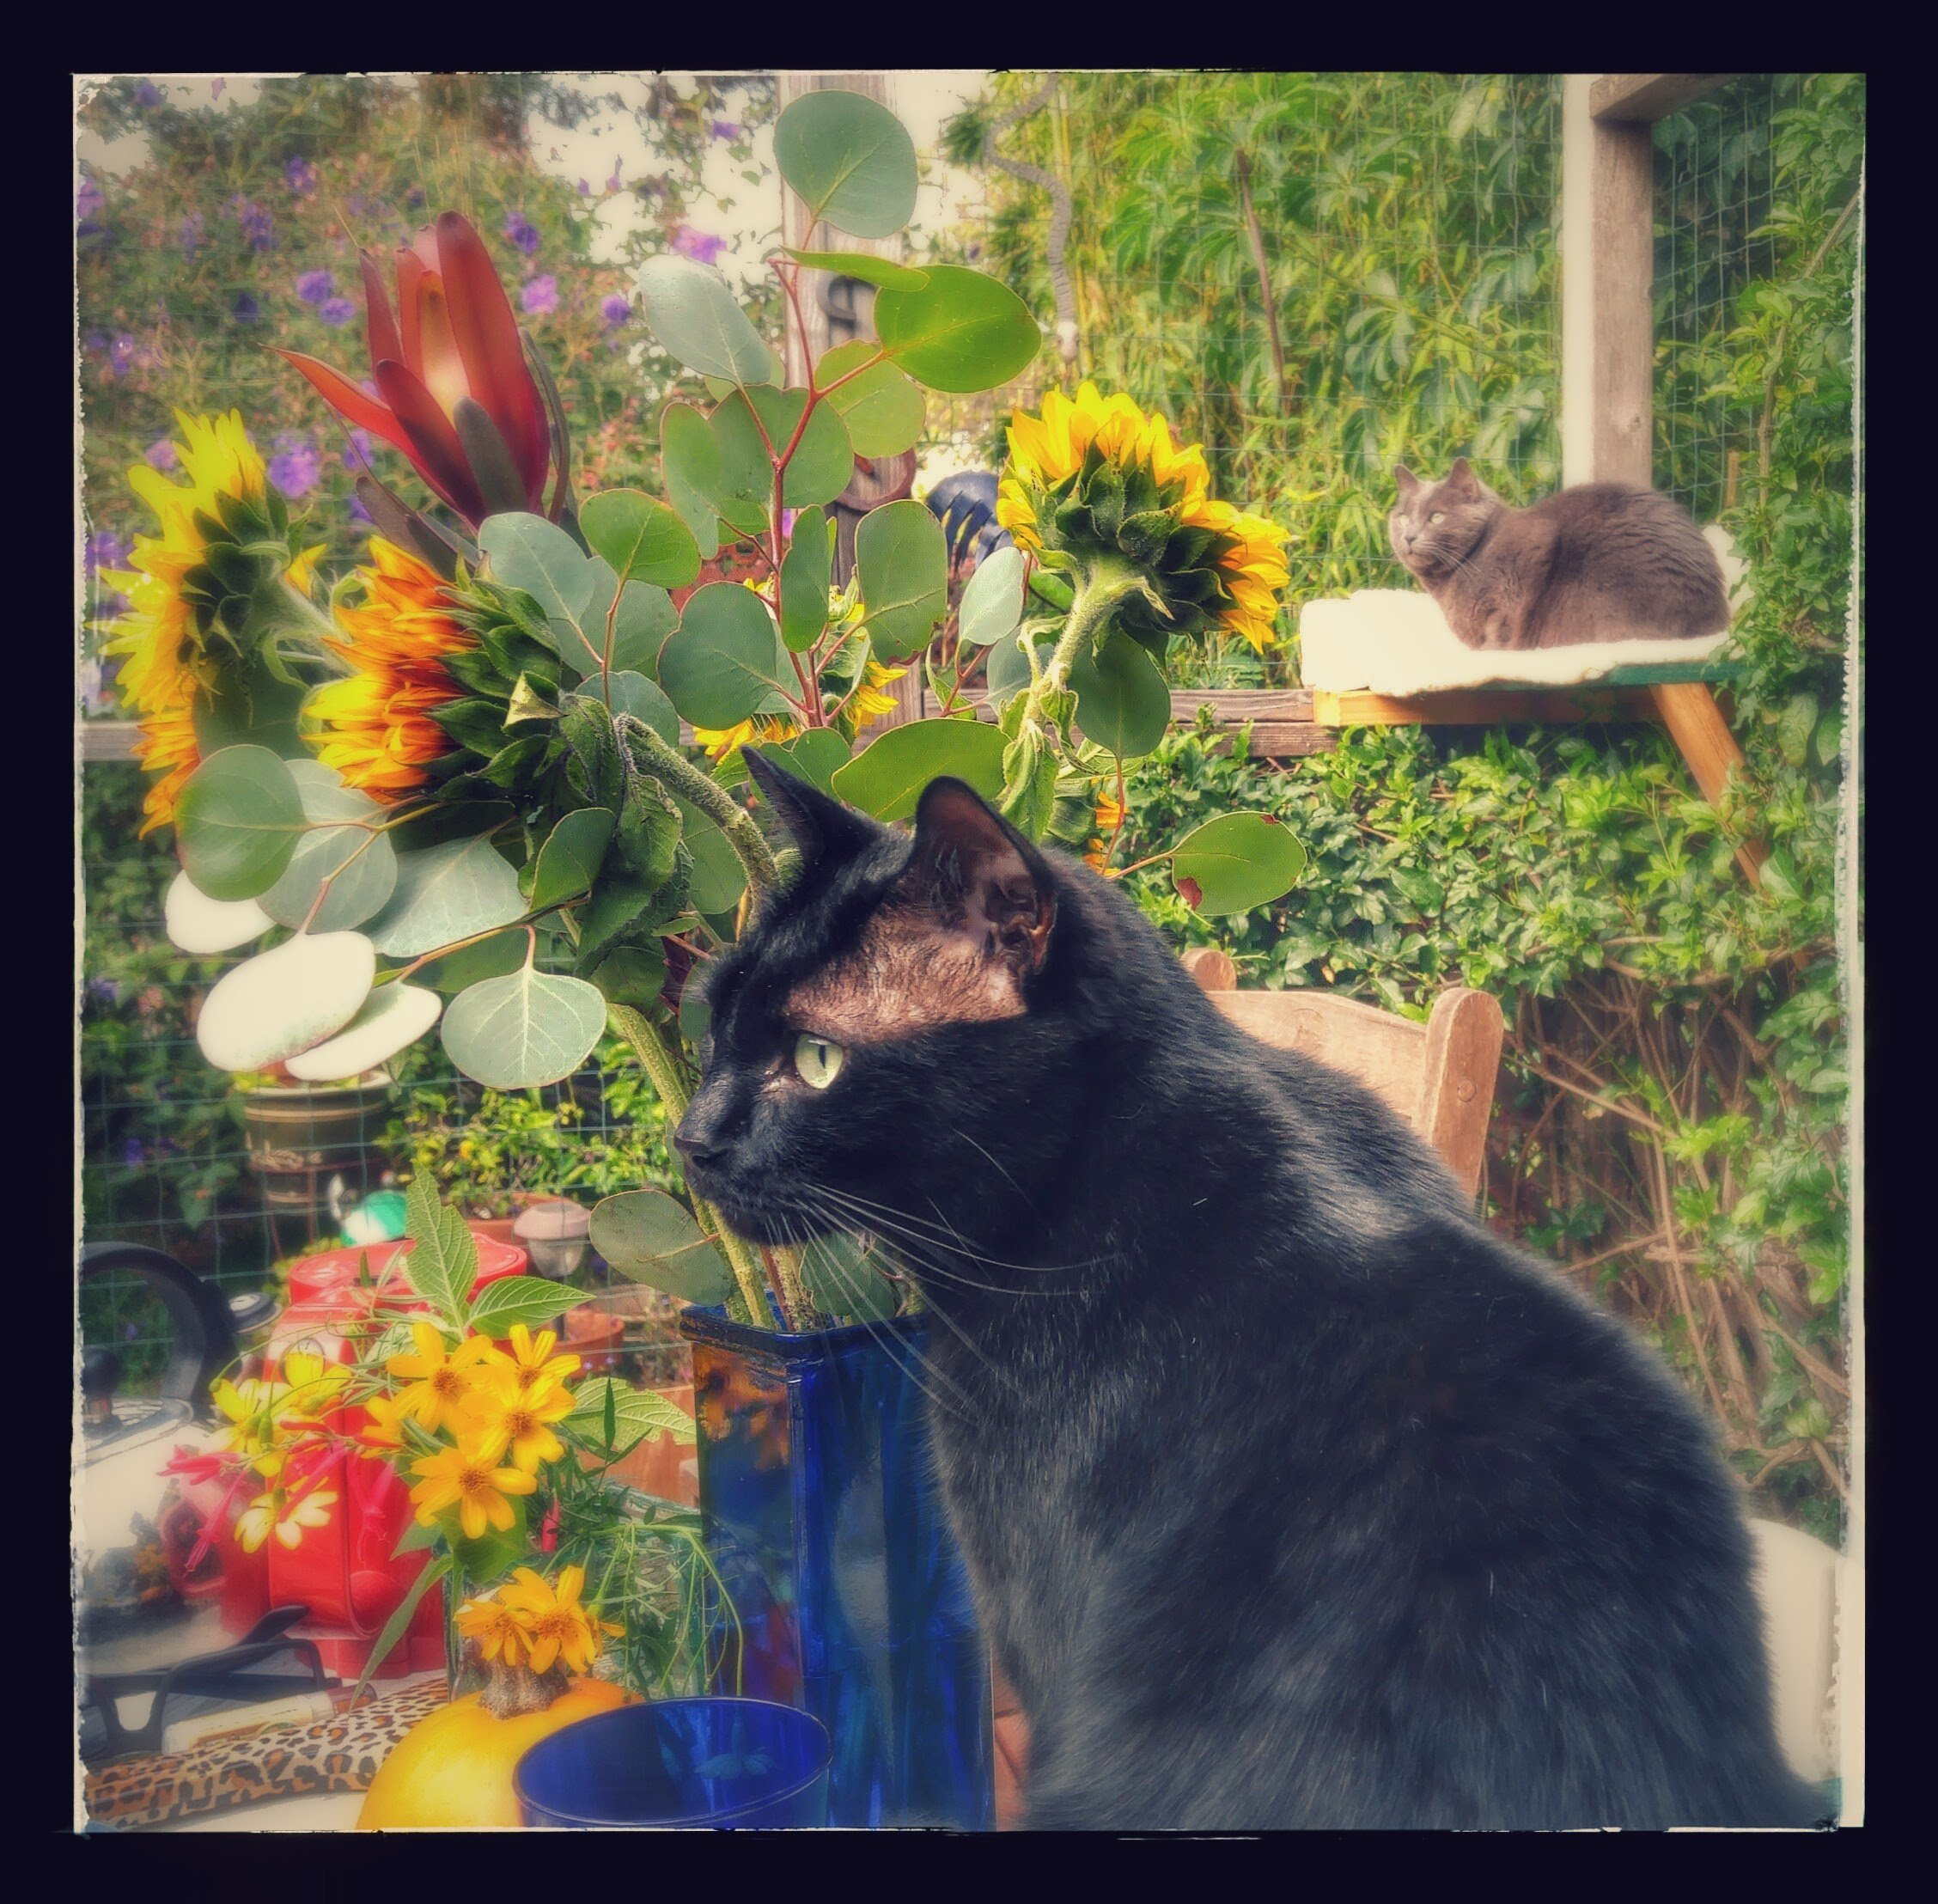 black cat in garden with gray cat in background - AnimalBiome